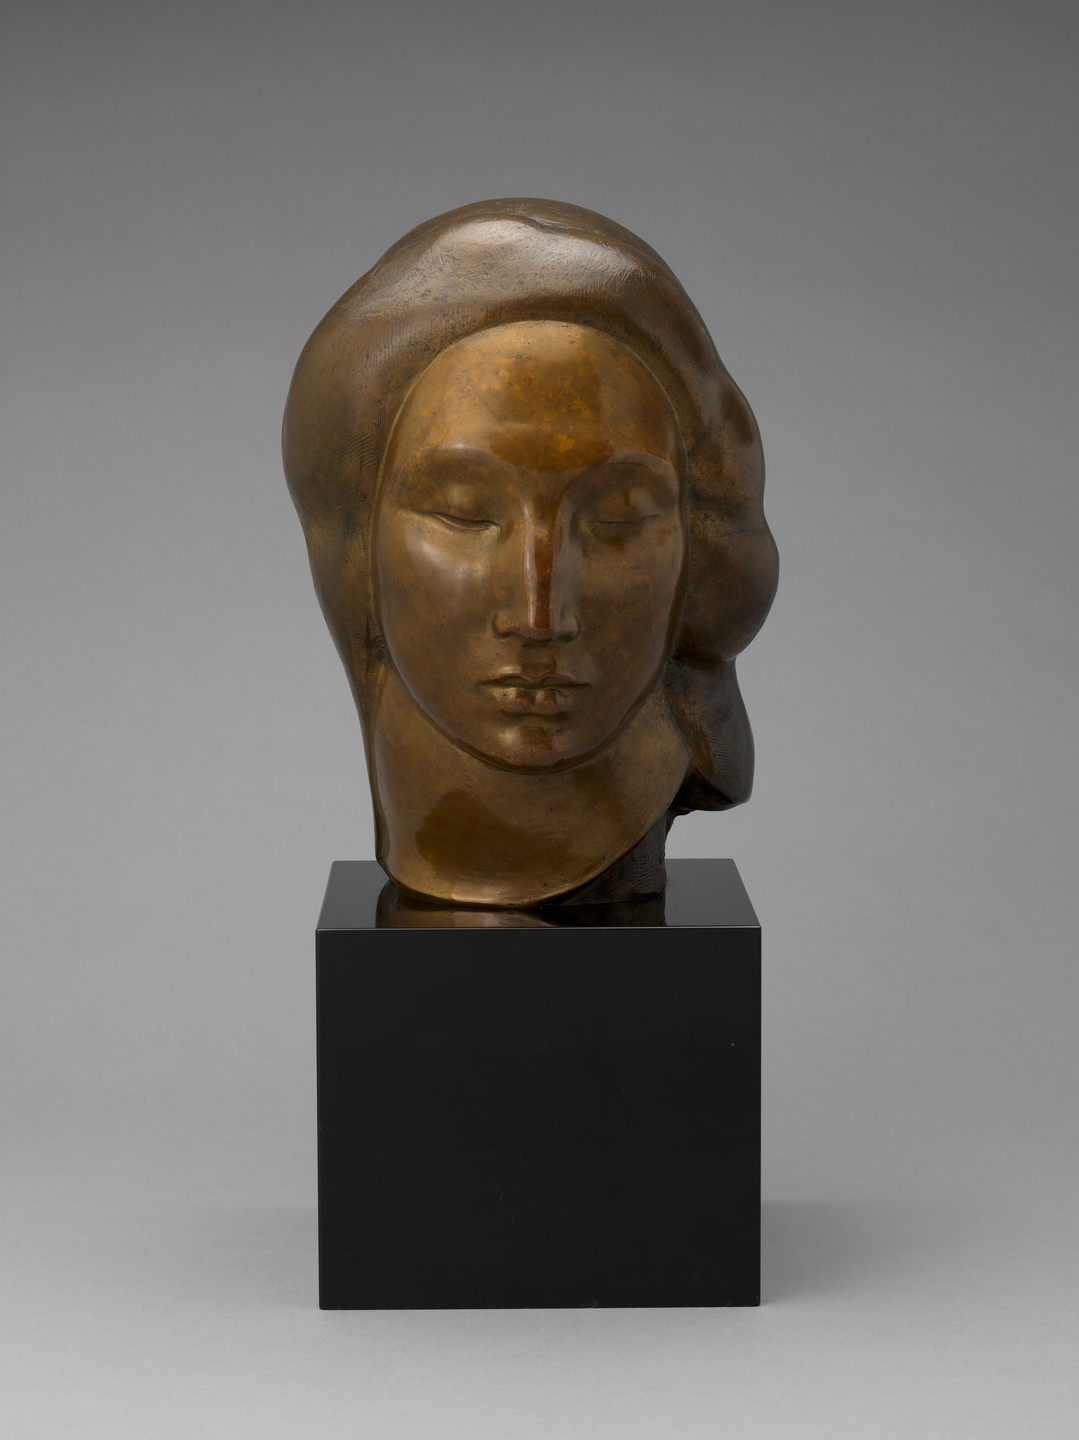 Gaston Lachaise. Head of a Woman (Egyptian Head). 1922